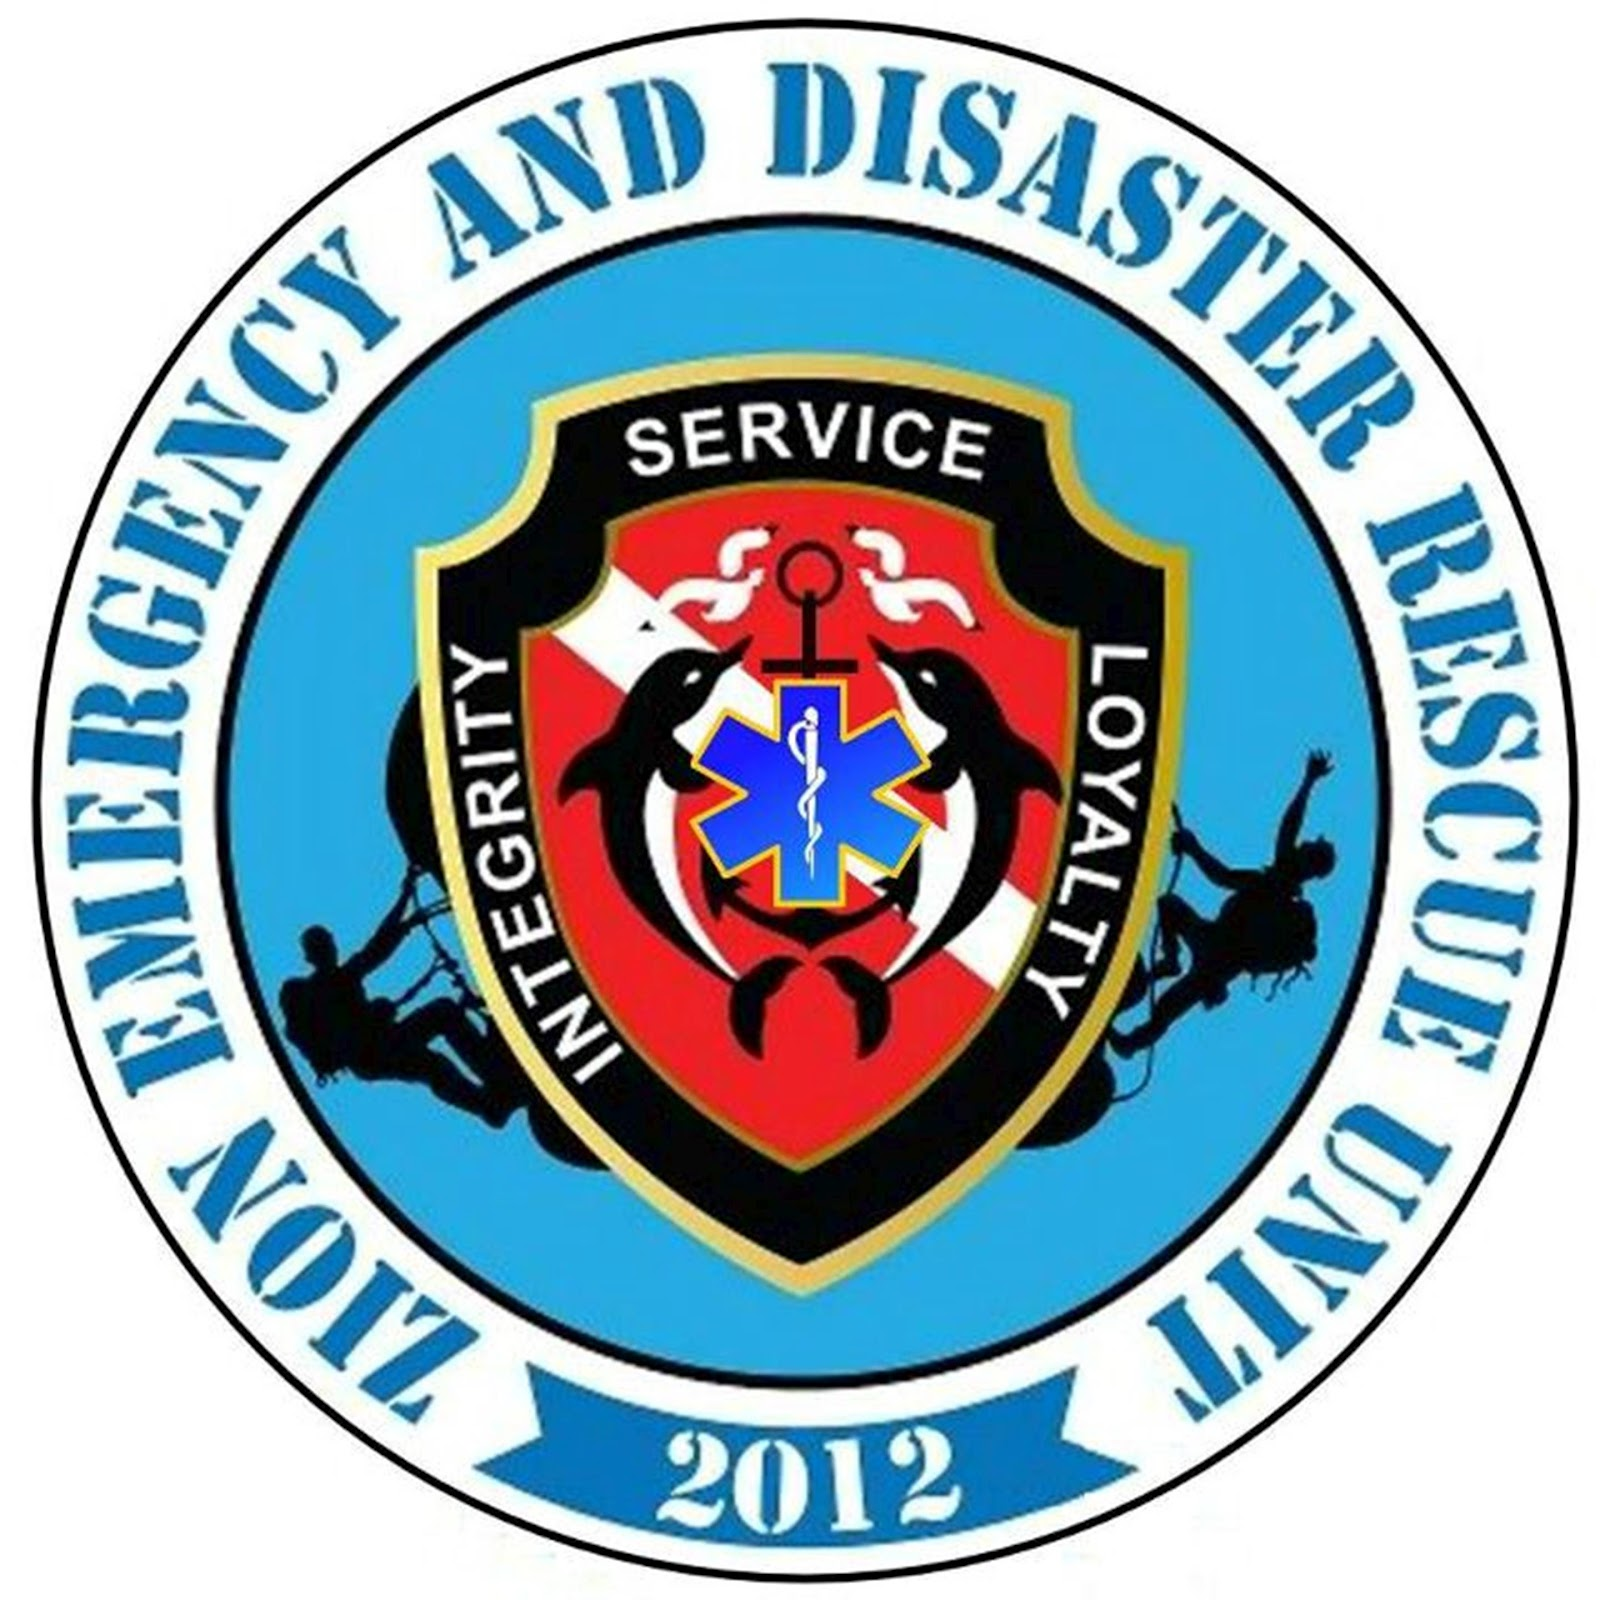 emergency disaster Emergency/disaster leave to provide emergency service shall be granted at the discretion of the requesting employee's agency head or designee in evaluating such requests.